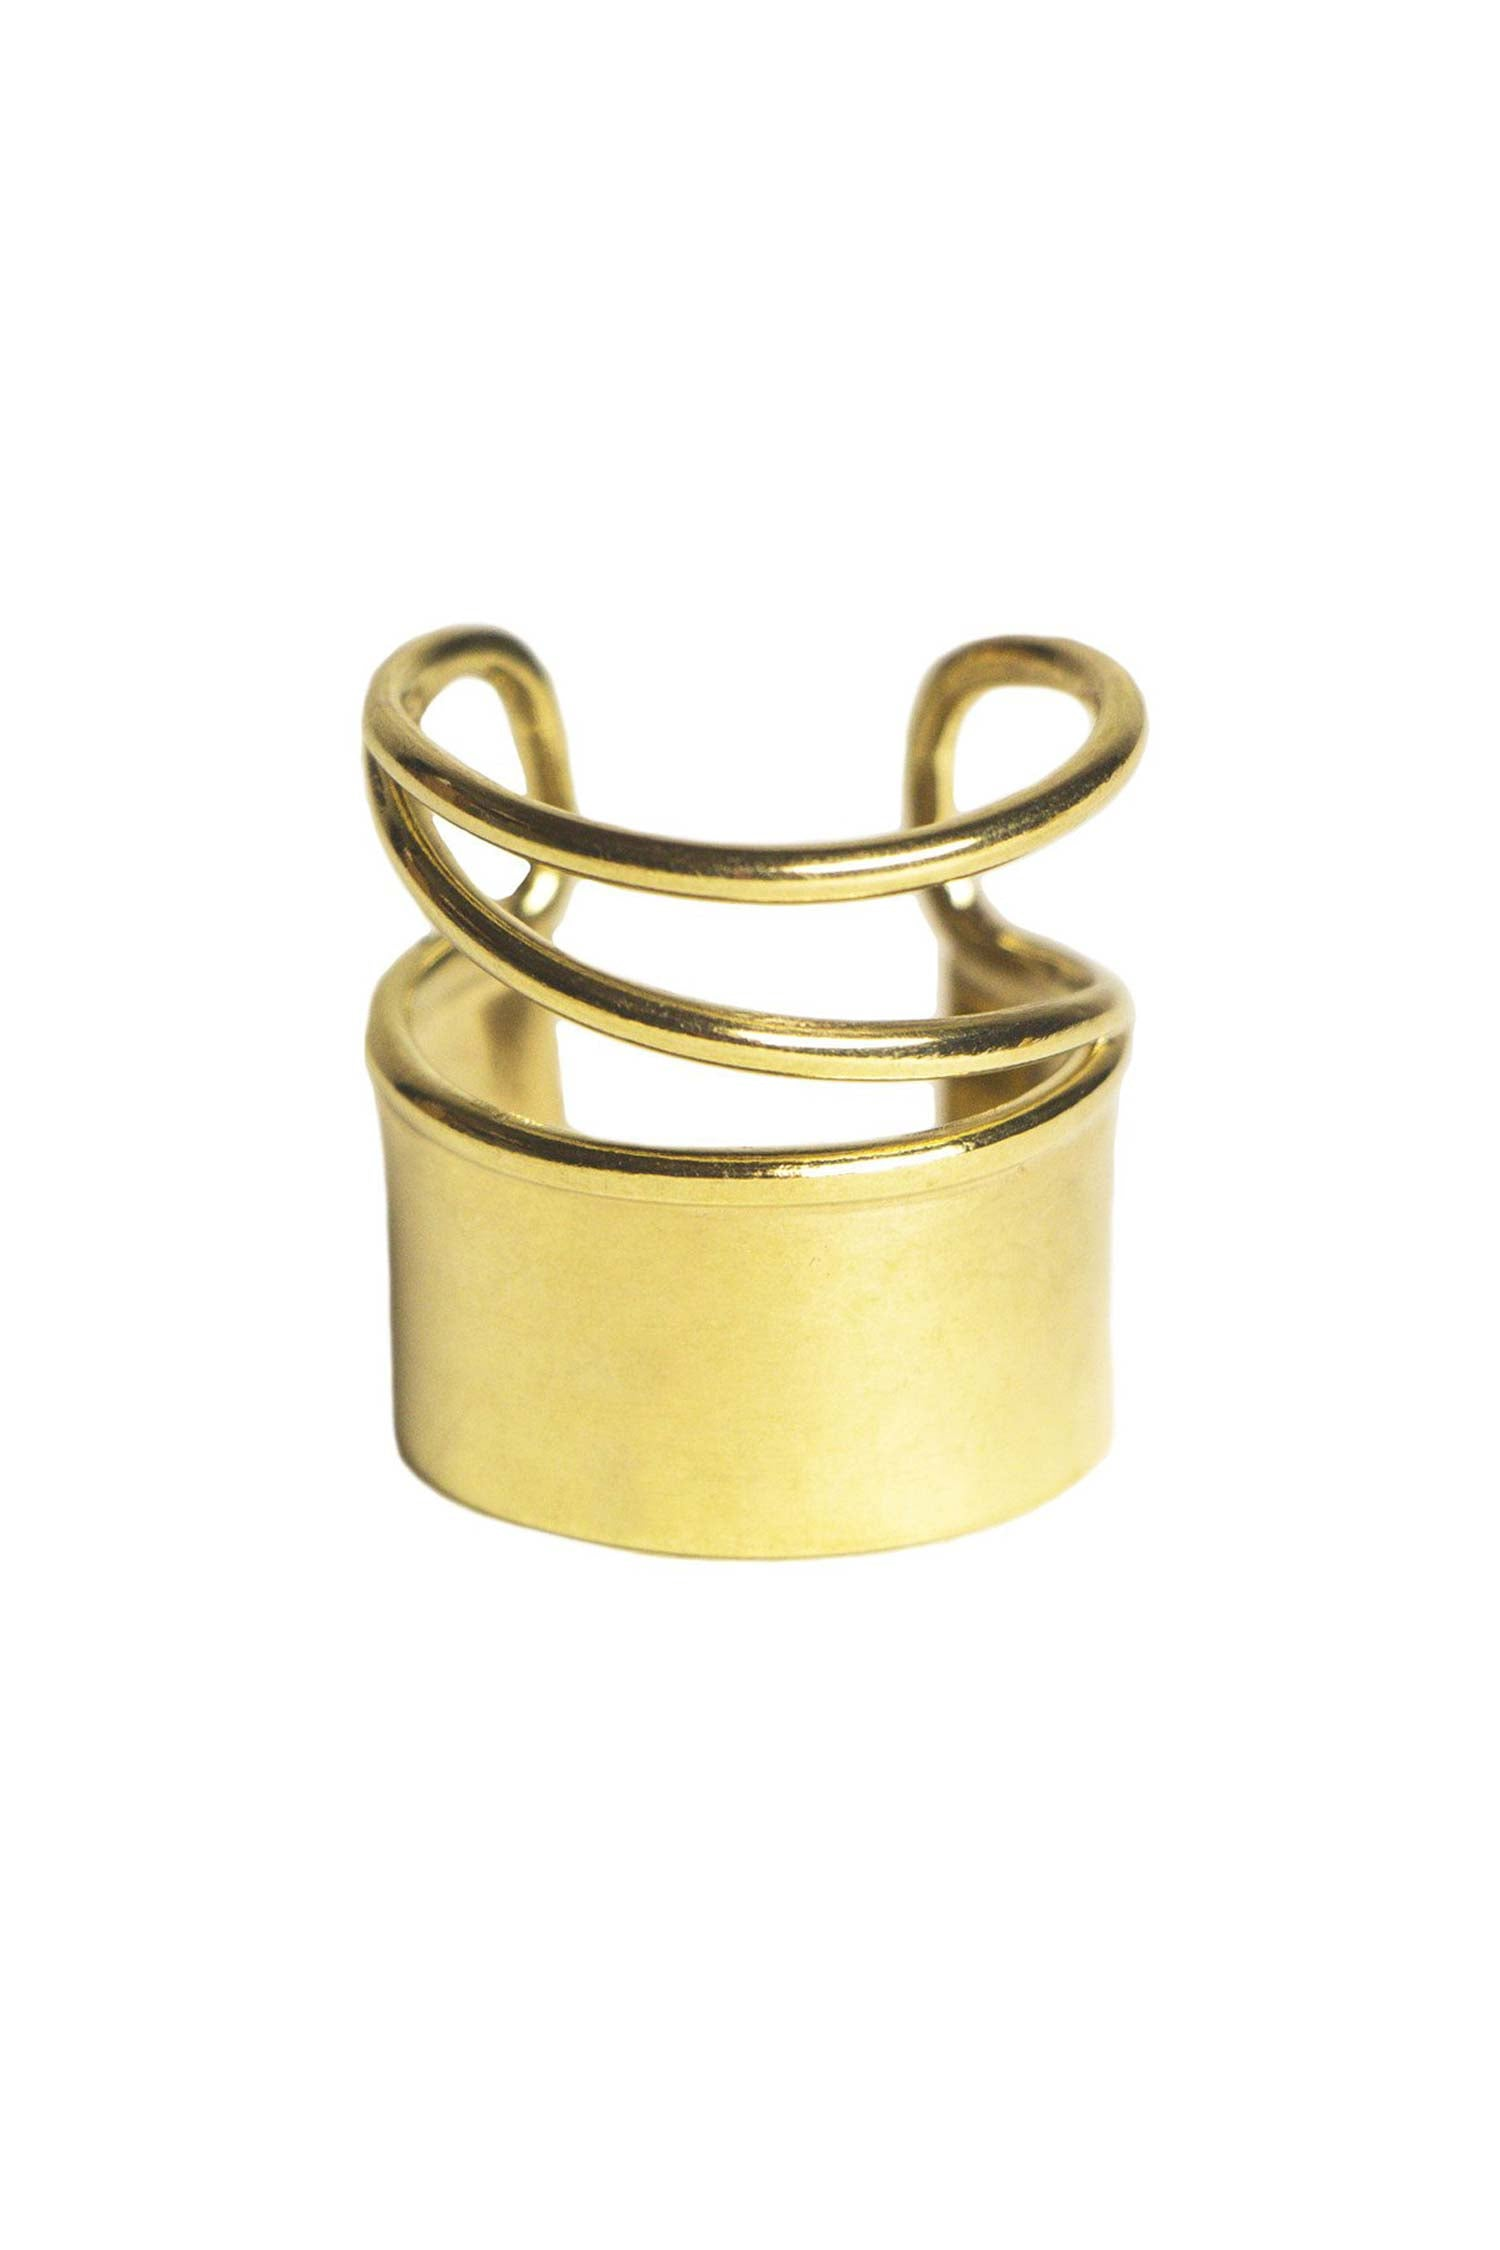 Adjustable Triple Band Ring | Soko Brass Ring